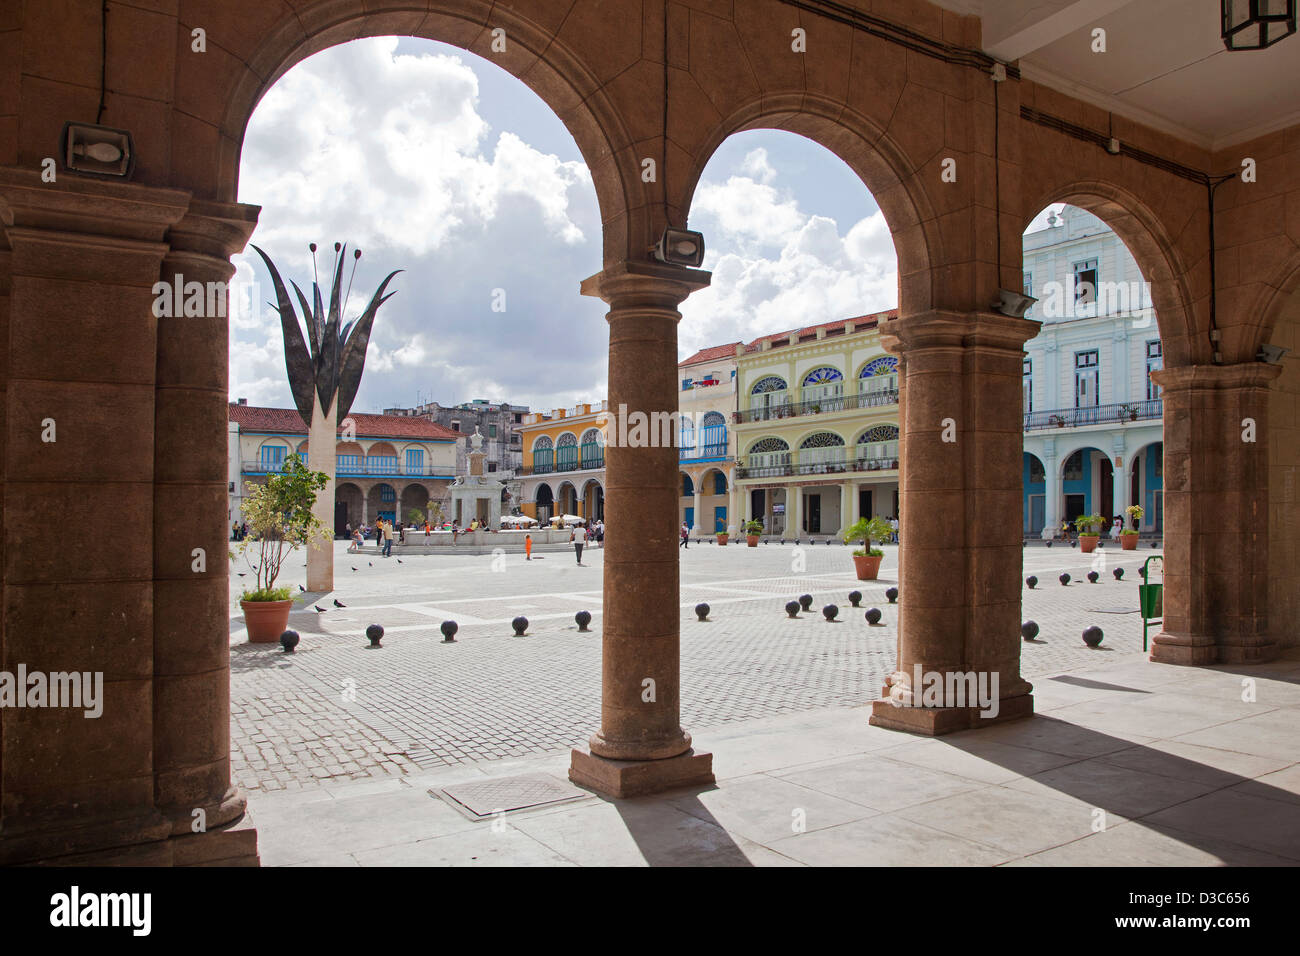 Colonial buildings along the Old Square / Plaza Vieja in Old Havana / La Habana Vieja, Cuba, Caribbean - Stock Image